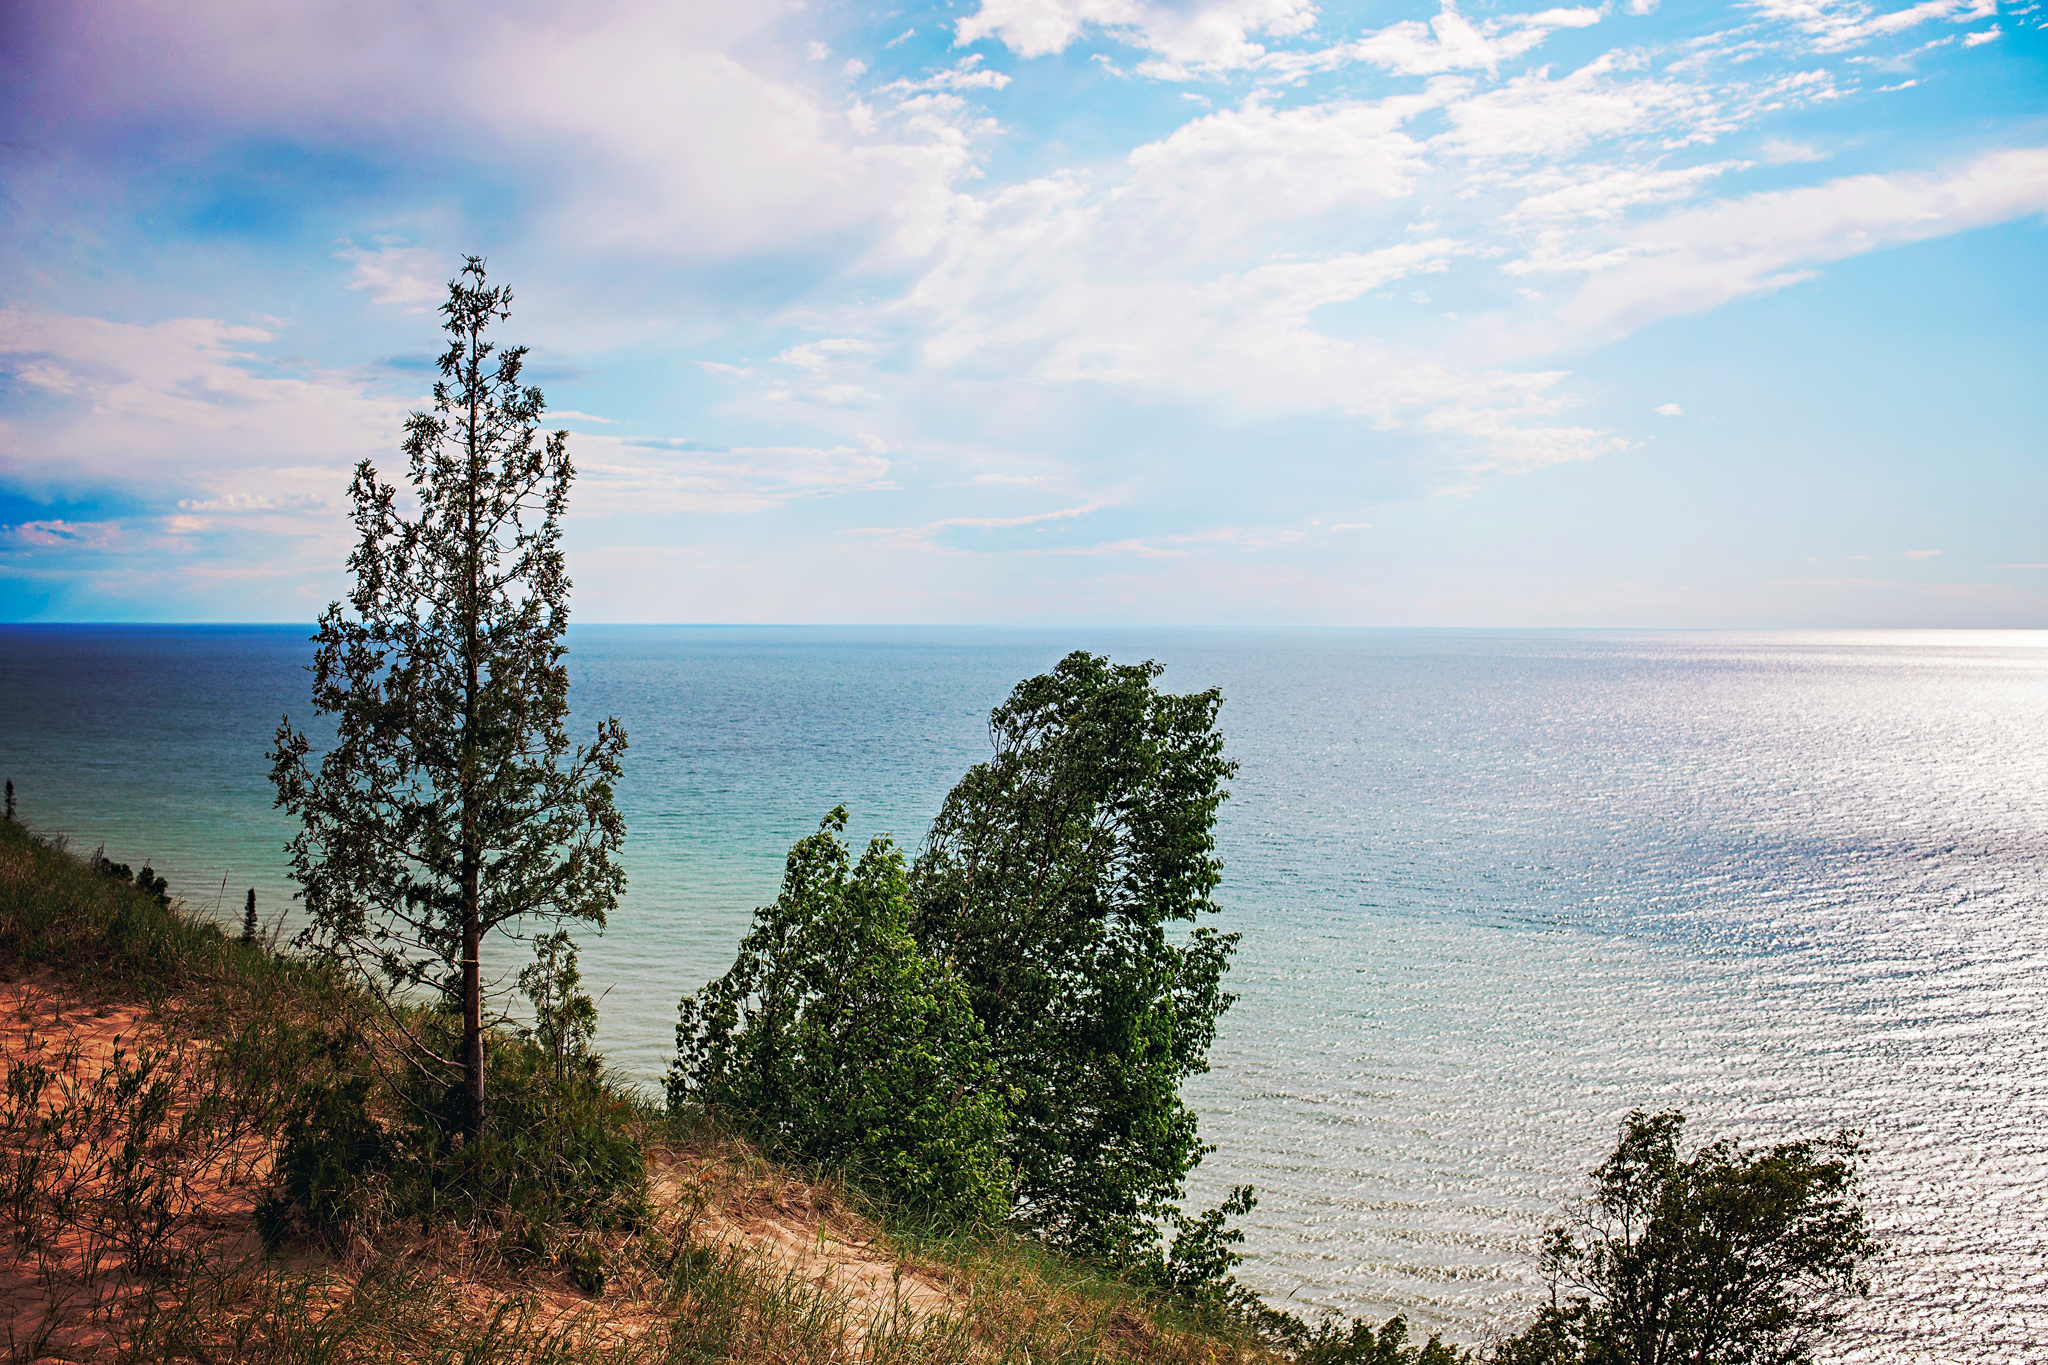 A view of Lake Michigan from Old Baldy